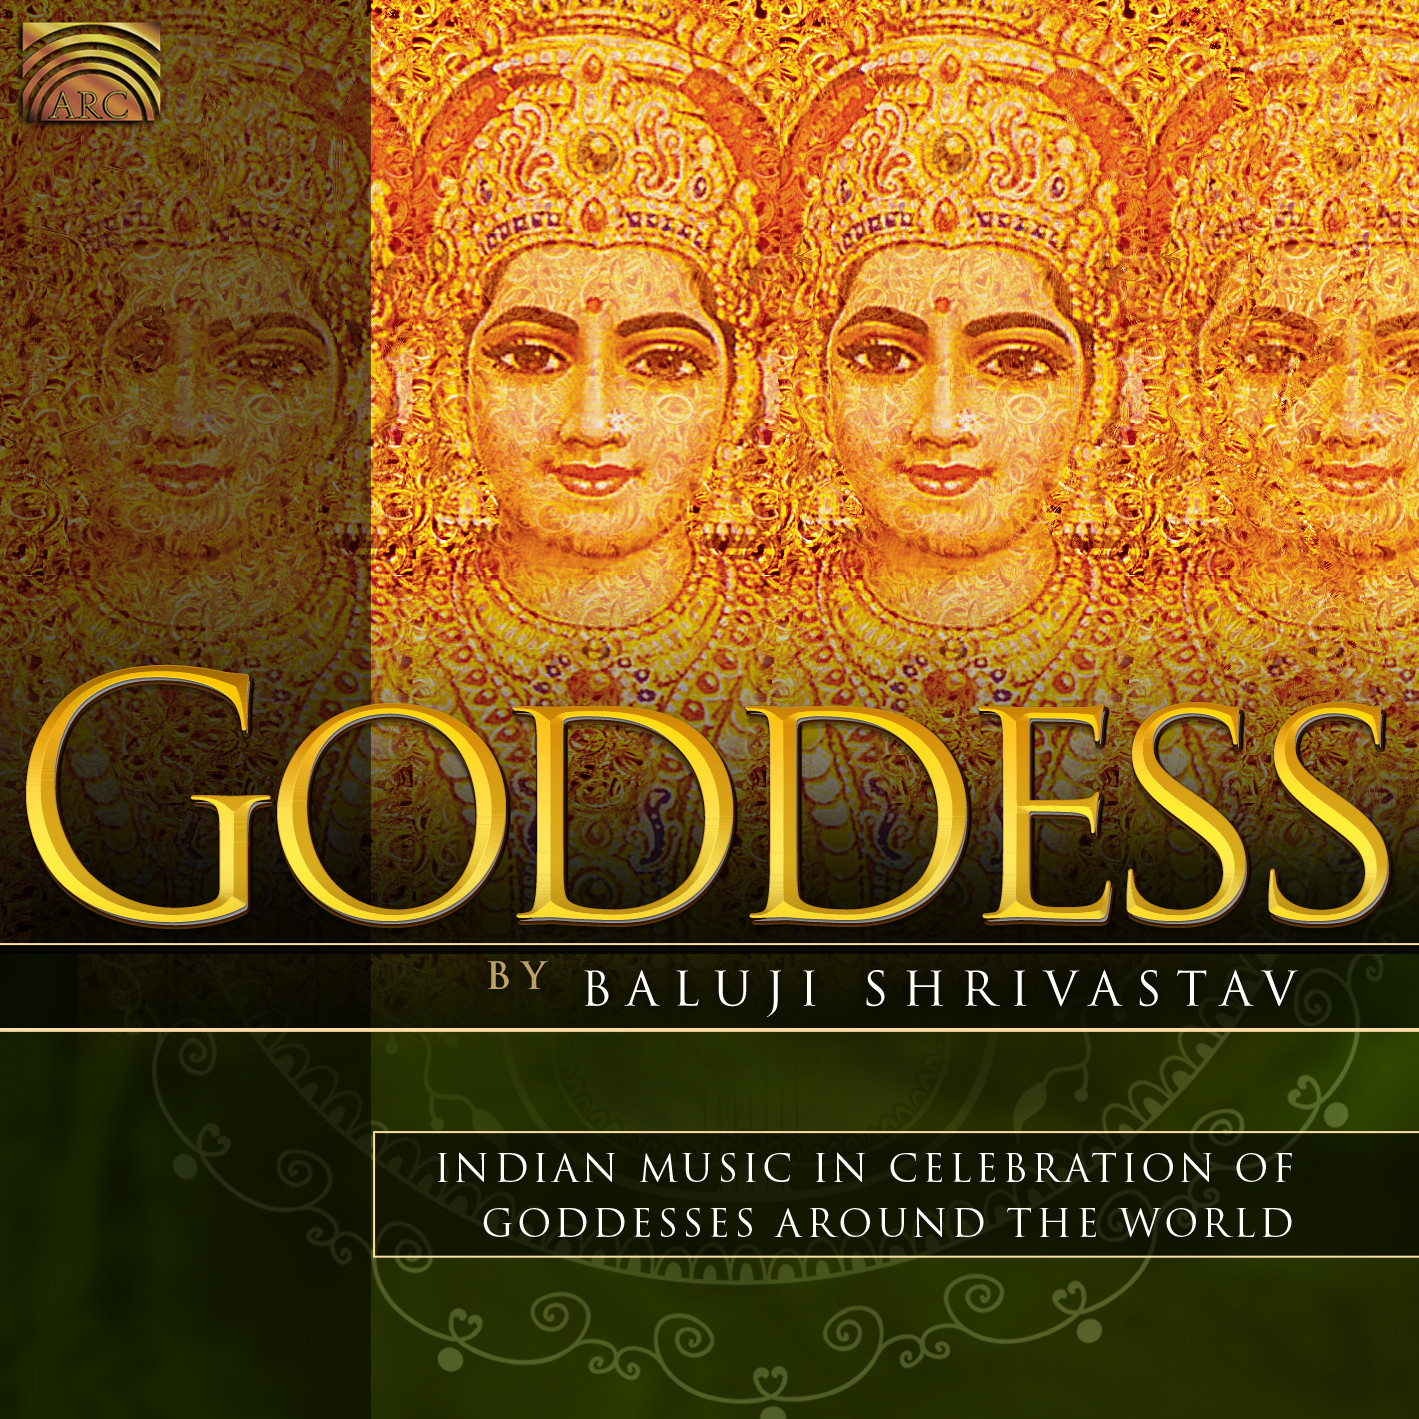 EUCD2283 Goddess - Indian Music in Celebration of Goddesses Around the World